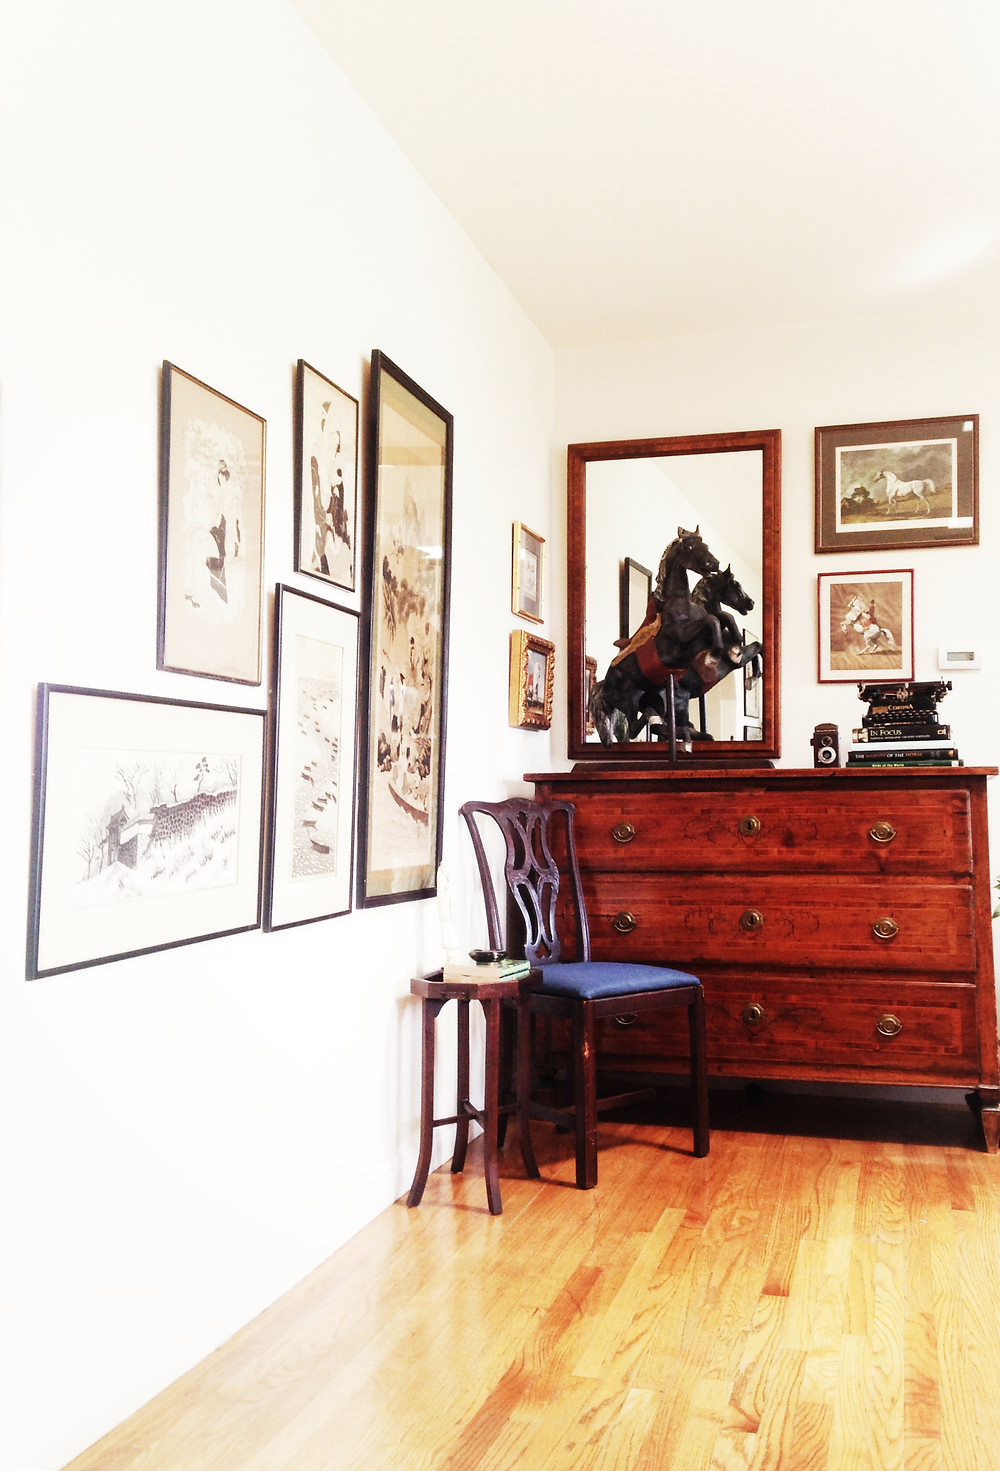 Antiques & Art Collection